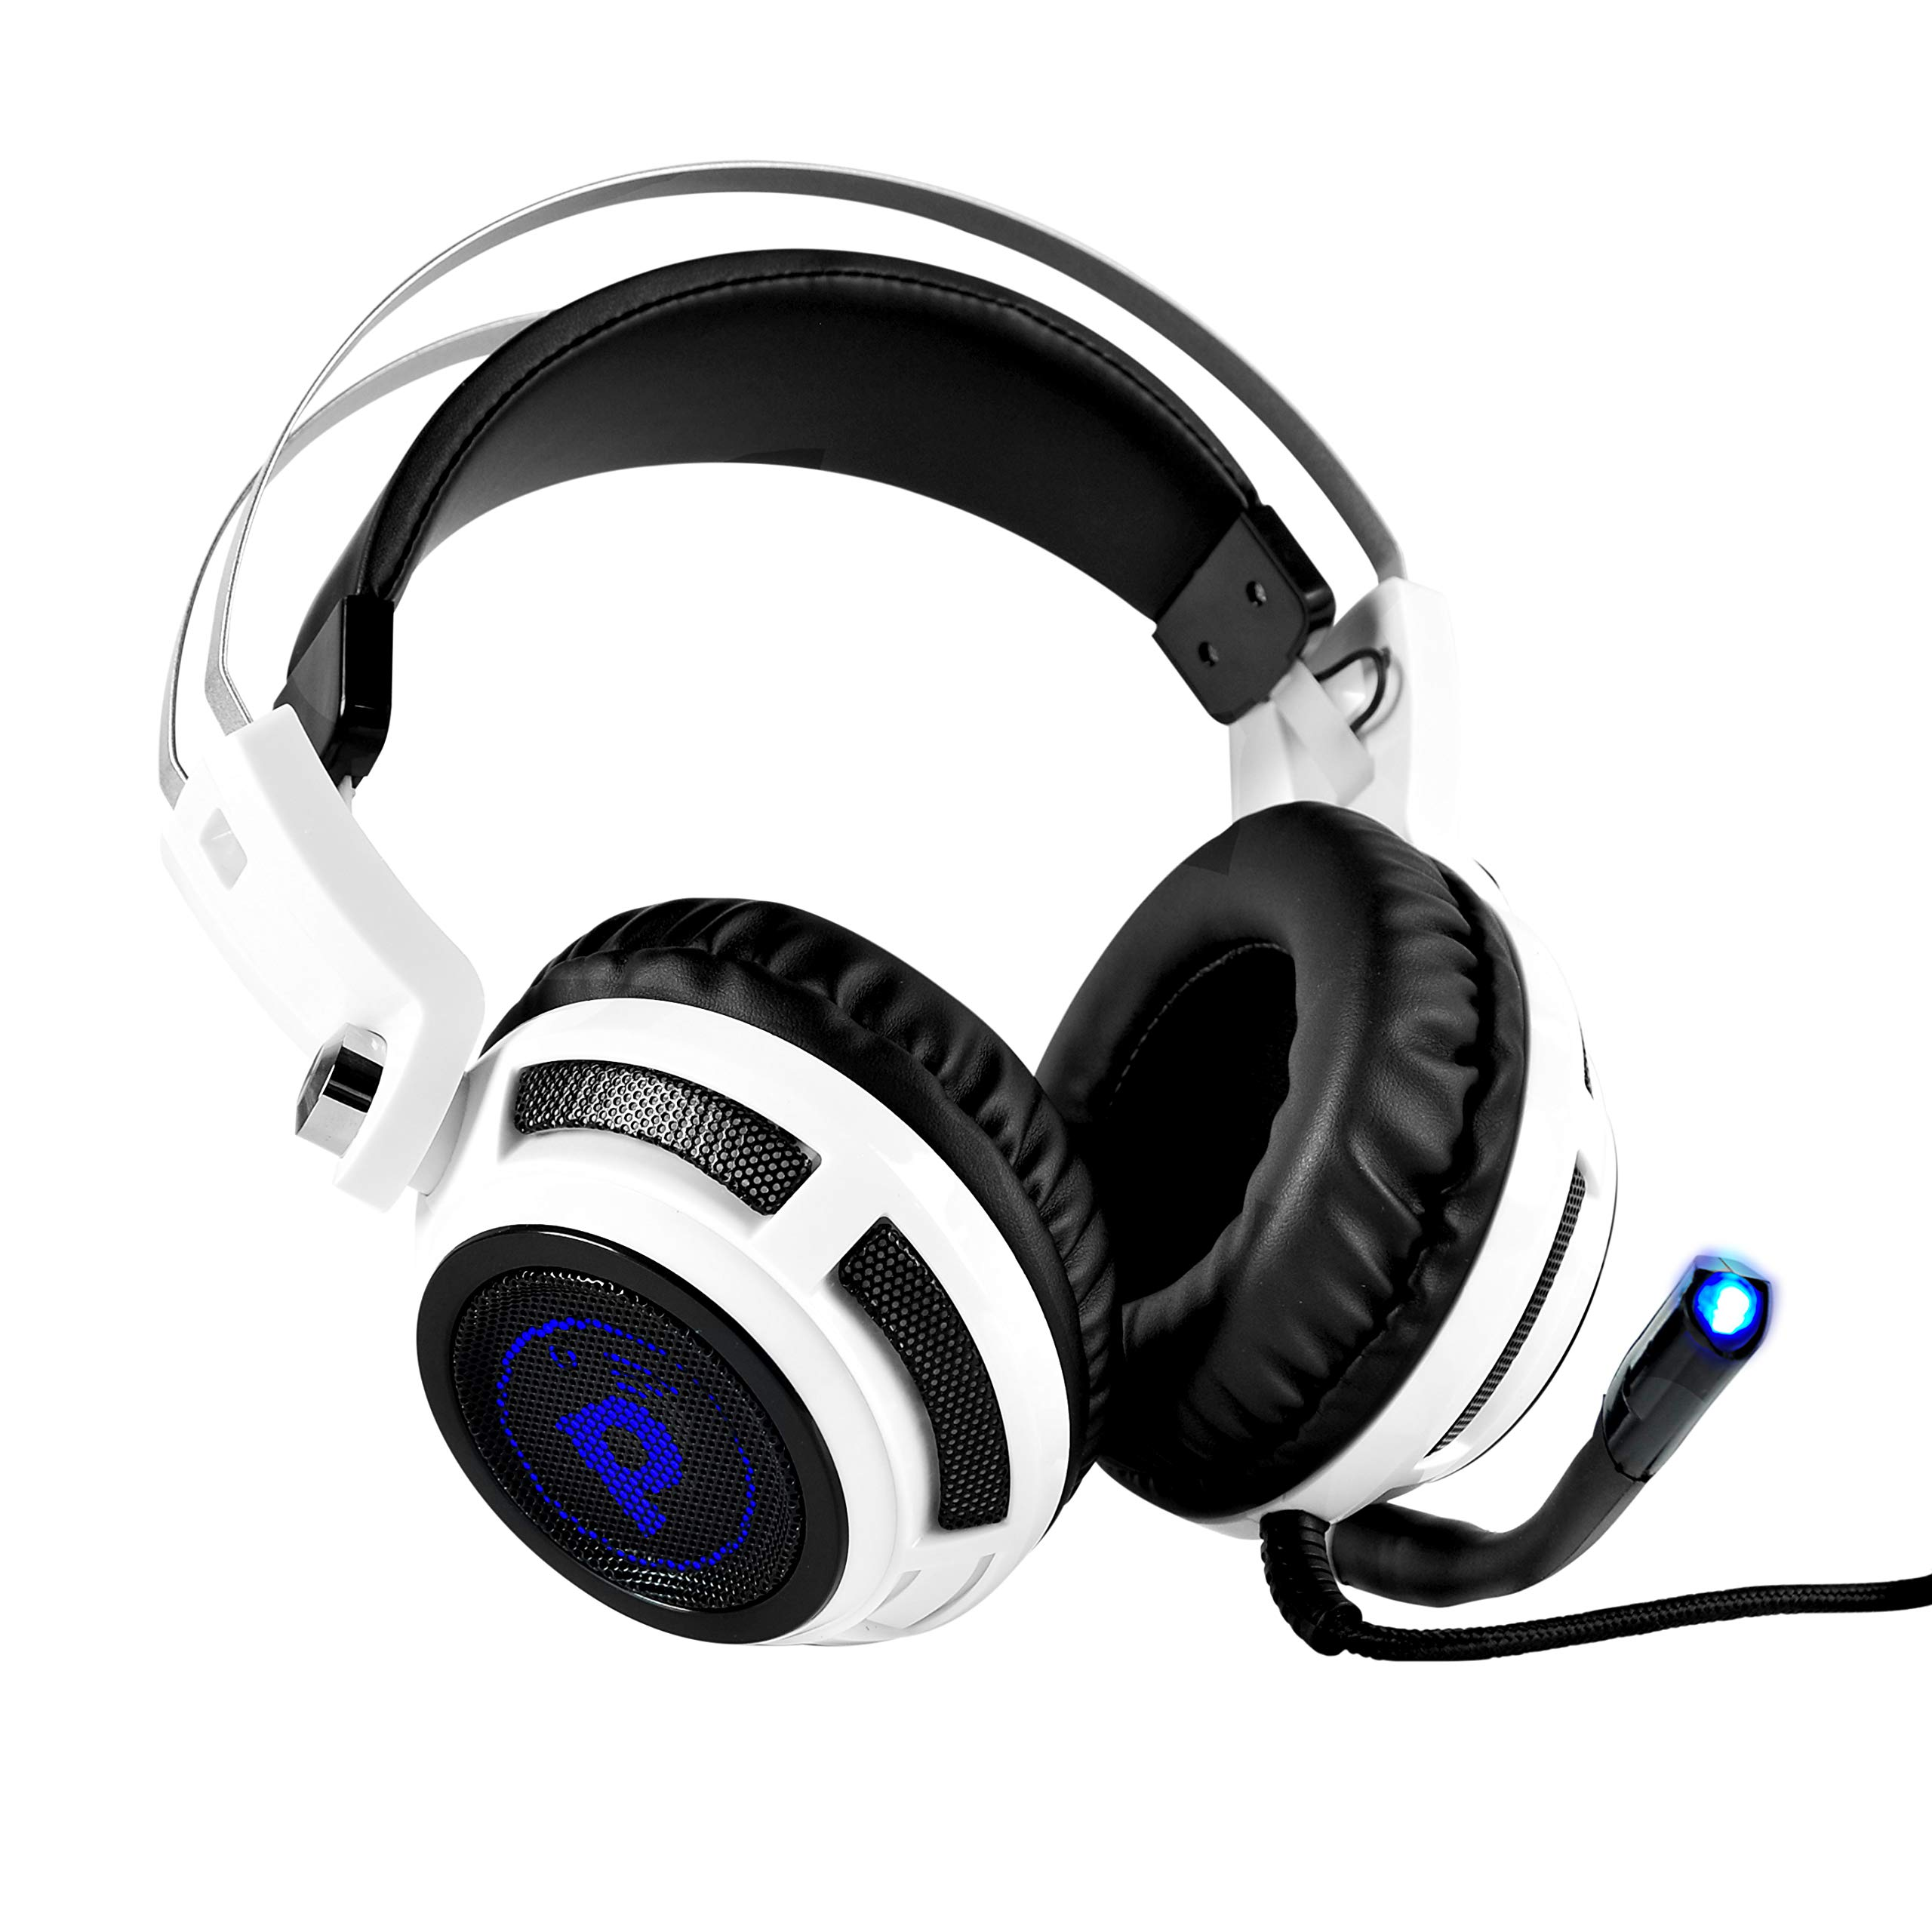 Pyle PC Wired Gaming Headphones - Professional Gamer USB Stereo Headset and Microphone for Windows Mac Computer Video Games - Braided Cable and 7.1 Virtual Surround Sound Audio and Mic Set - PGPHONE80